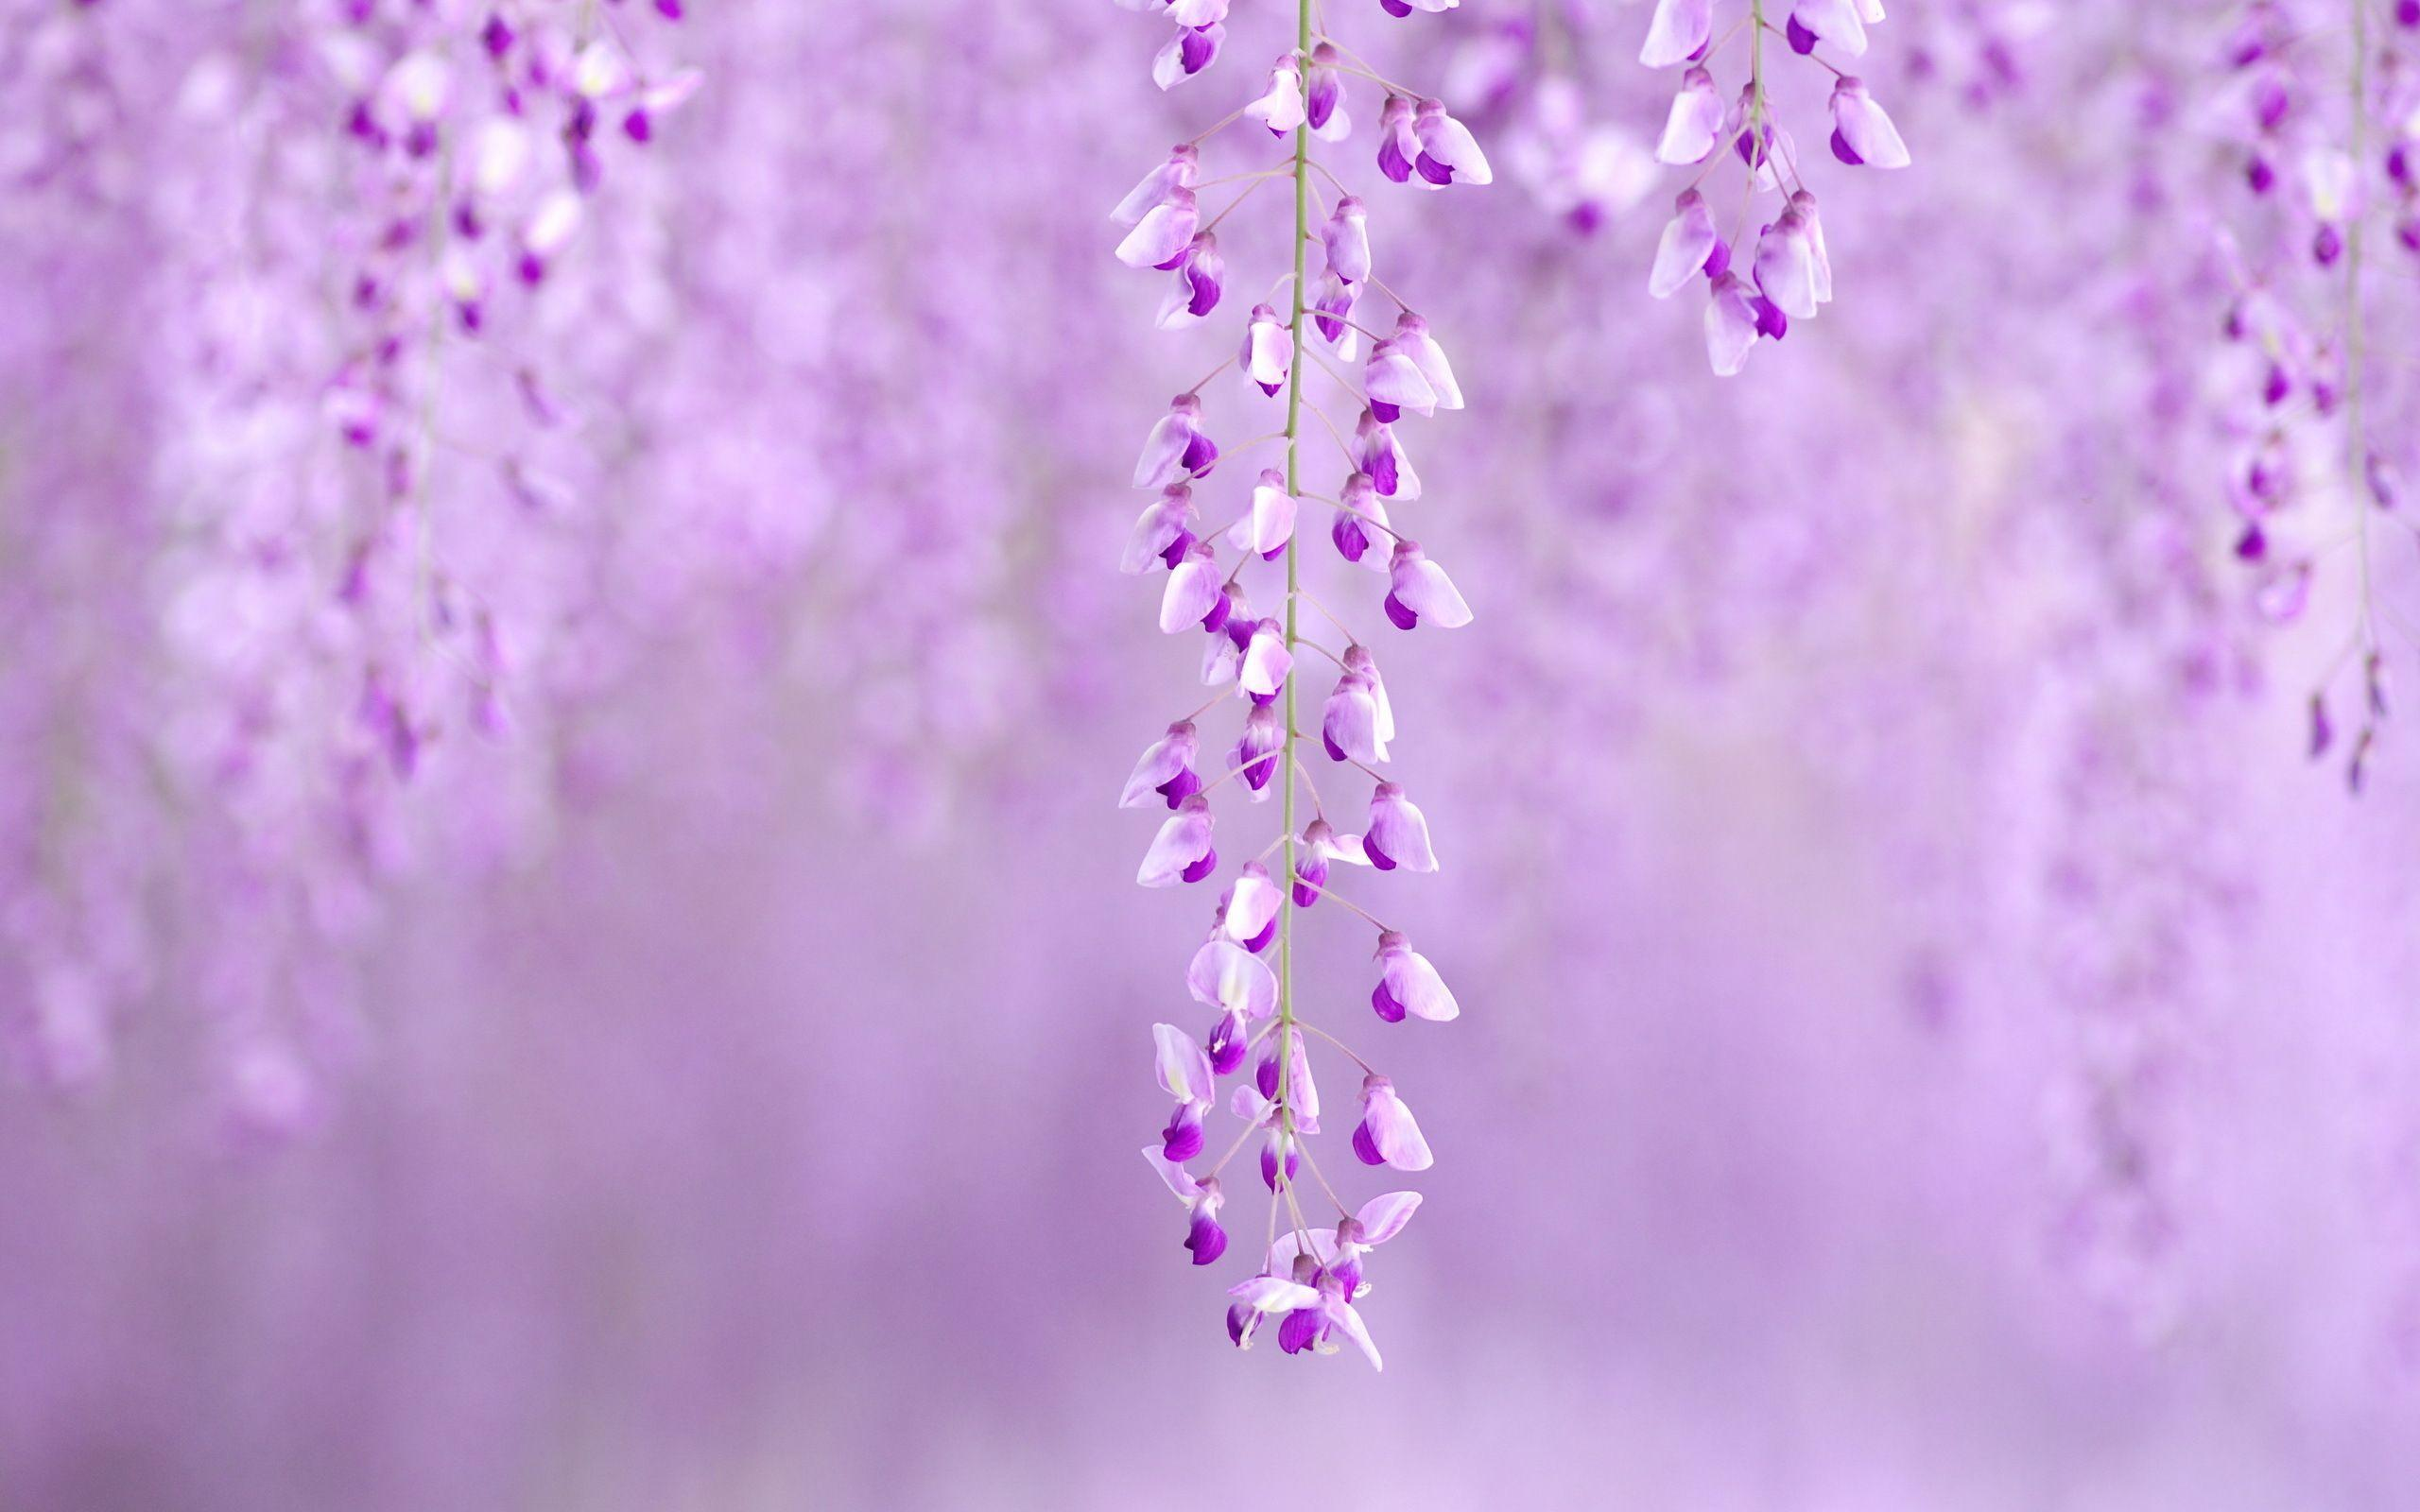 lavender color wallpaper hd - photo #20